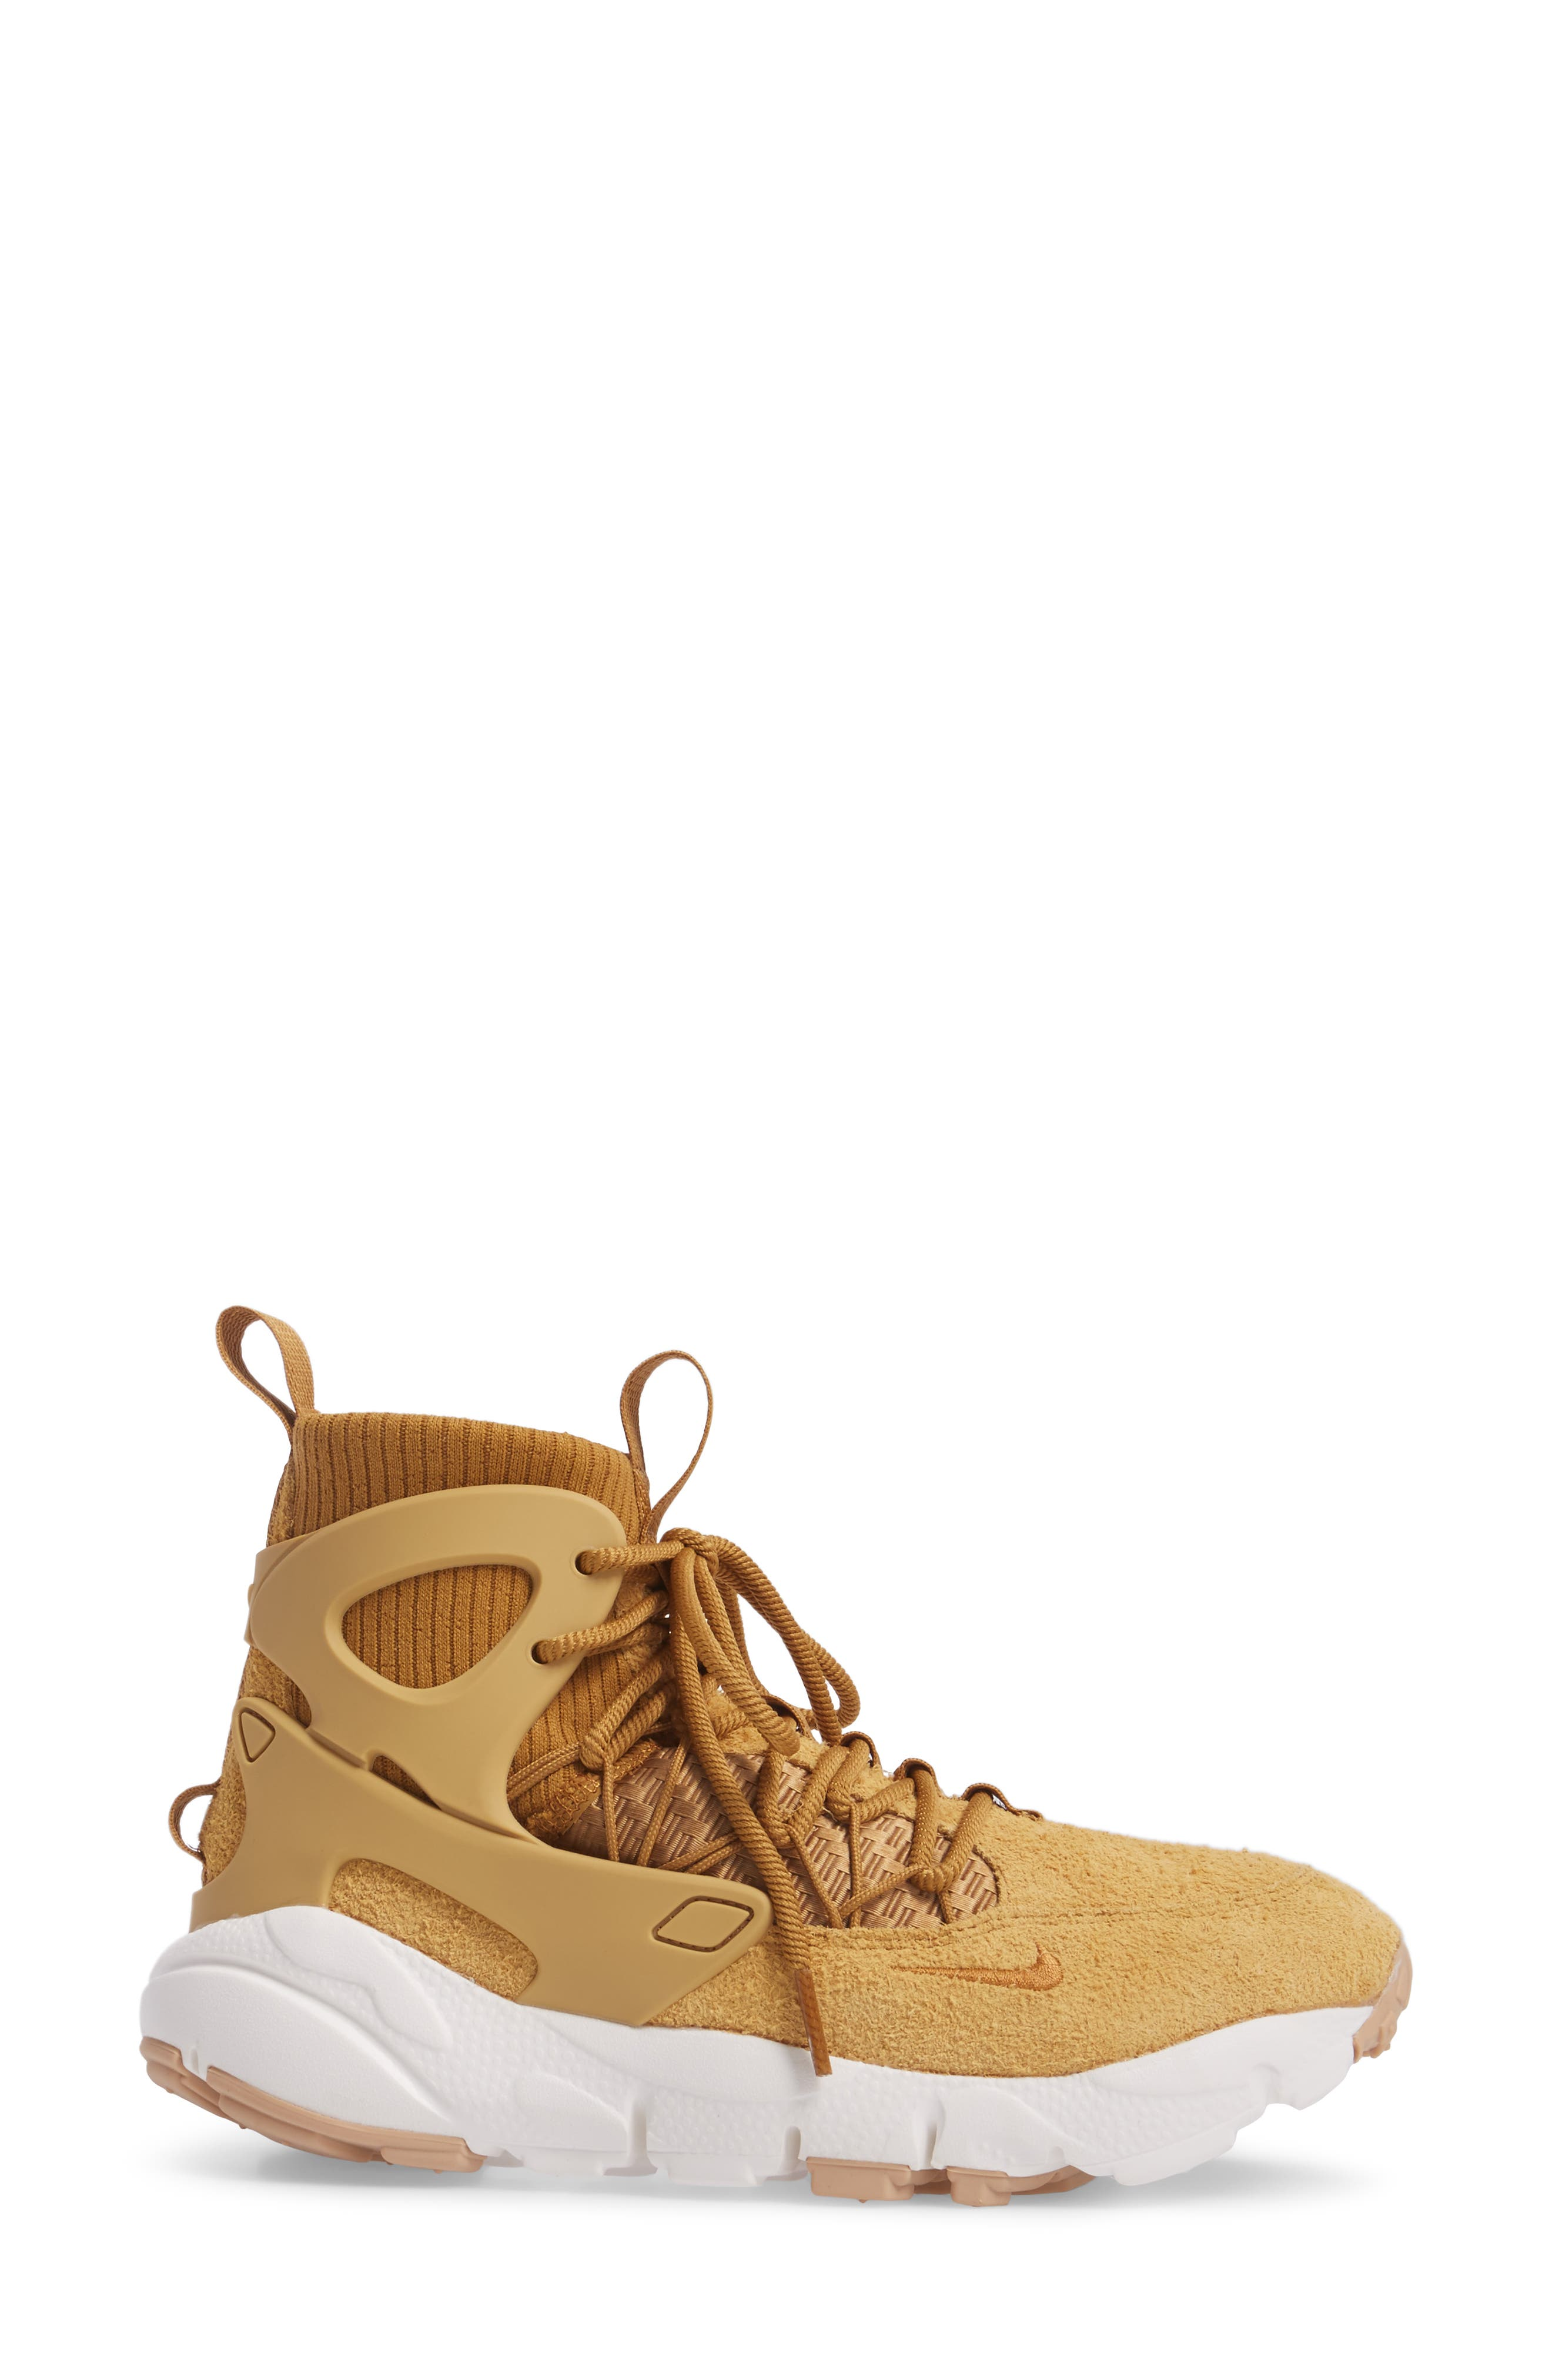 Air Footscape Mid Sneaker Boot,                             Alternate thumbnail 3, color,                             250